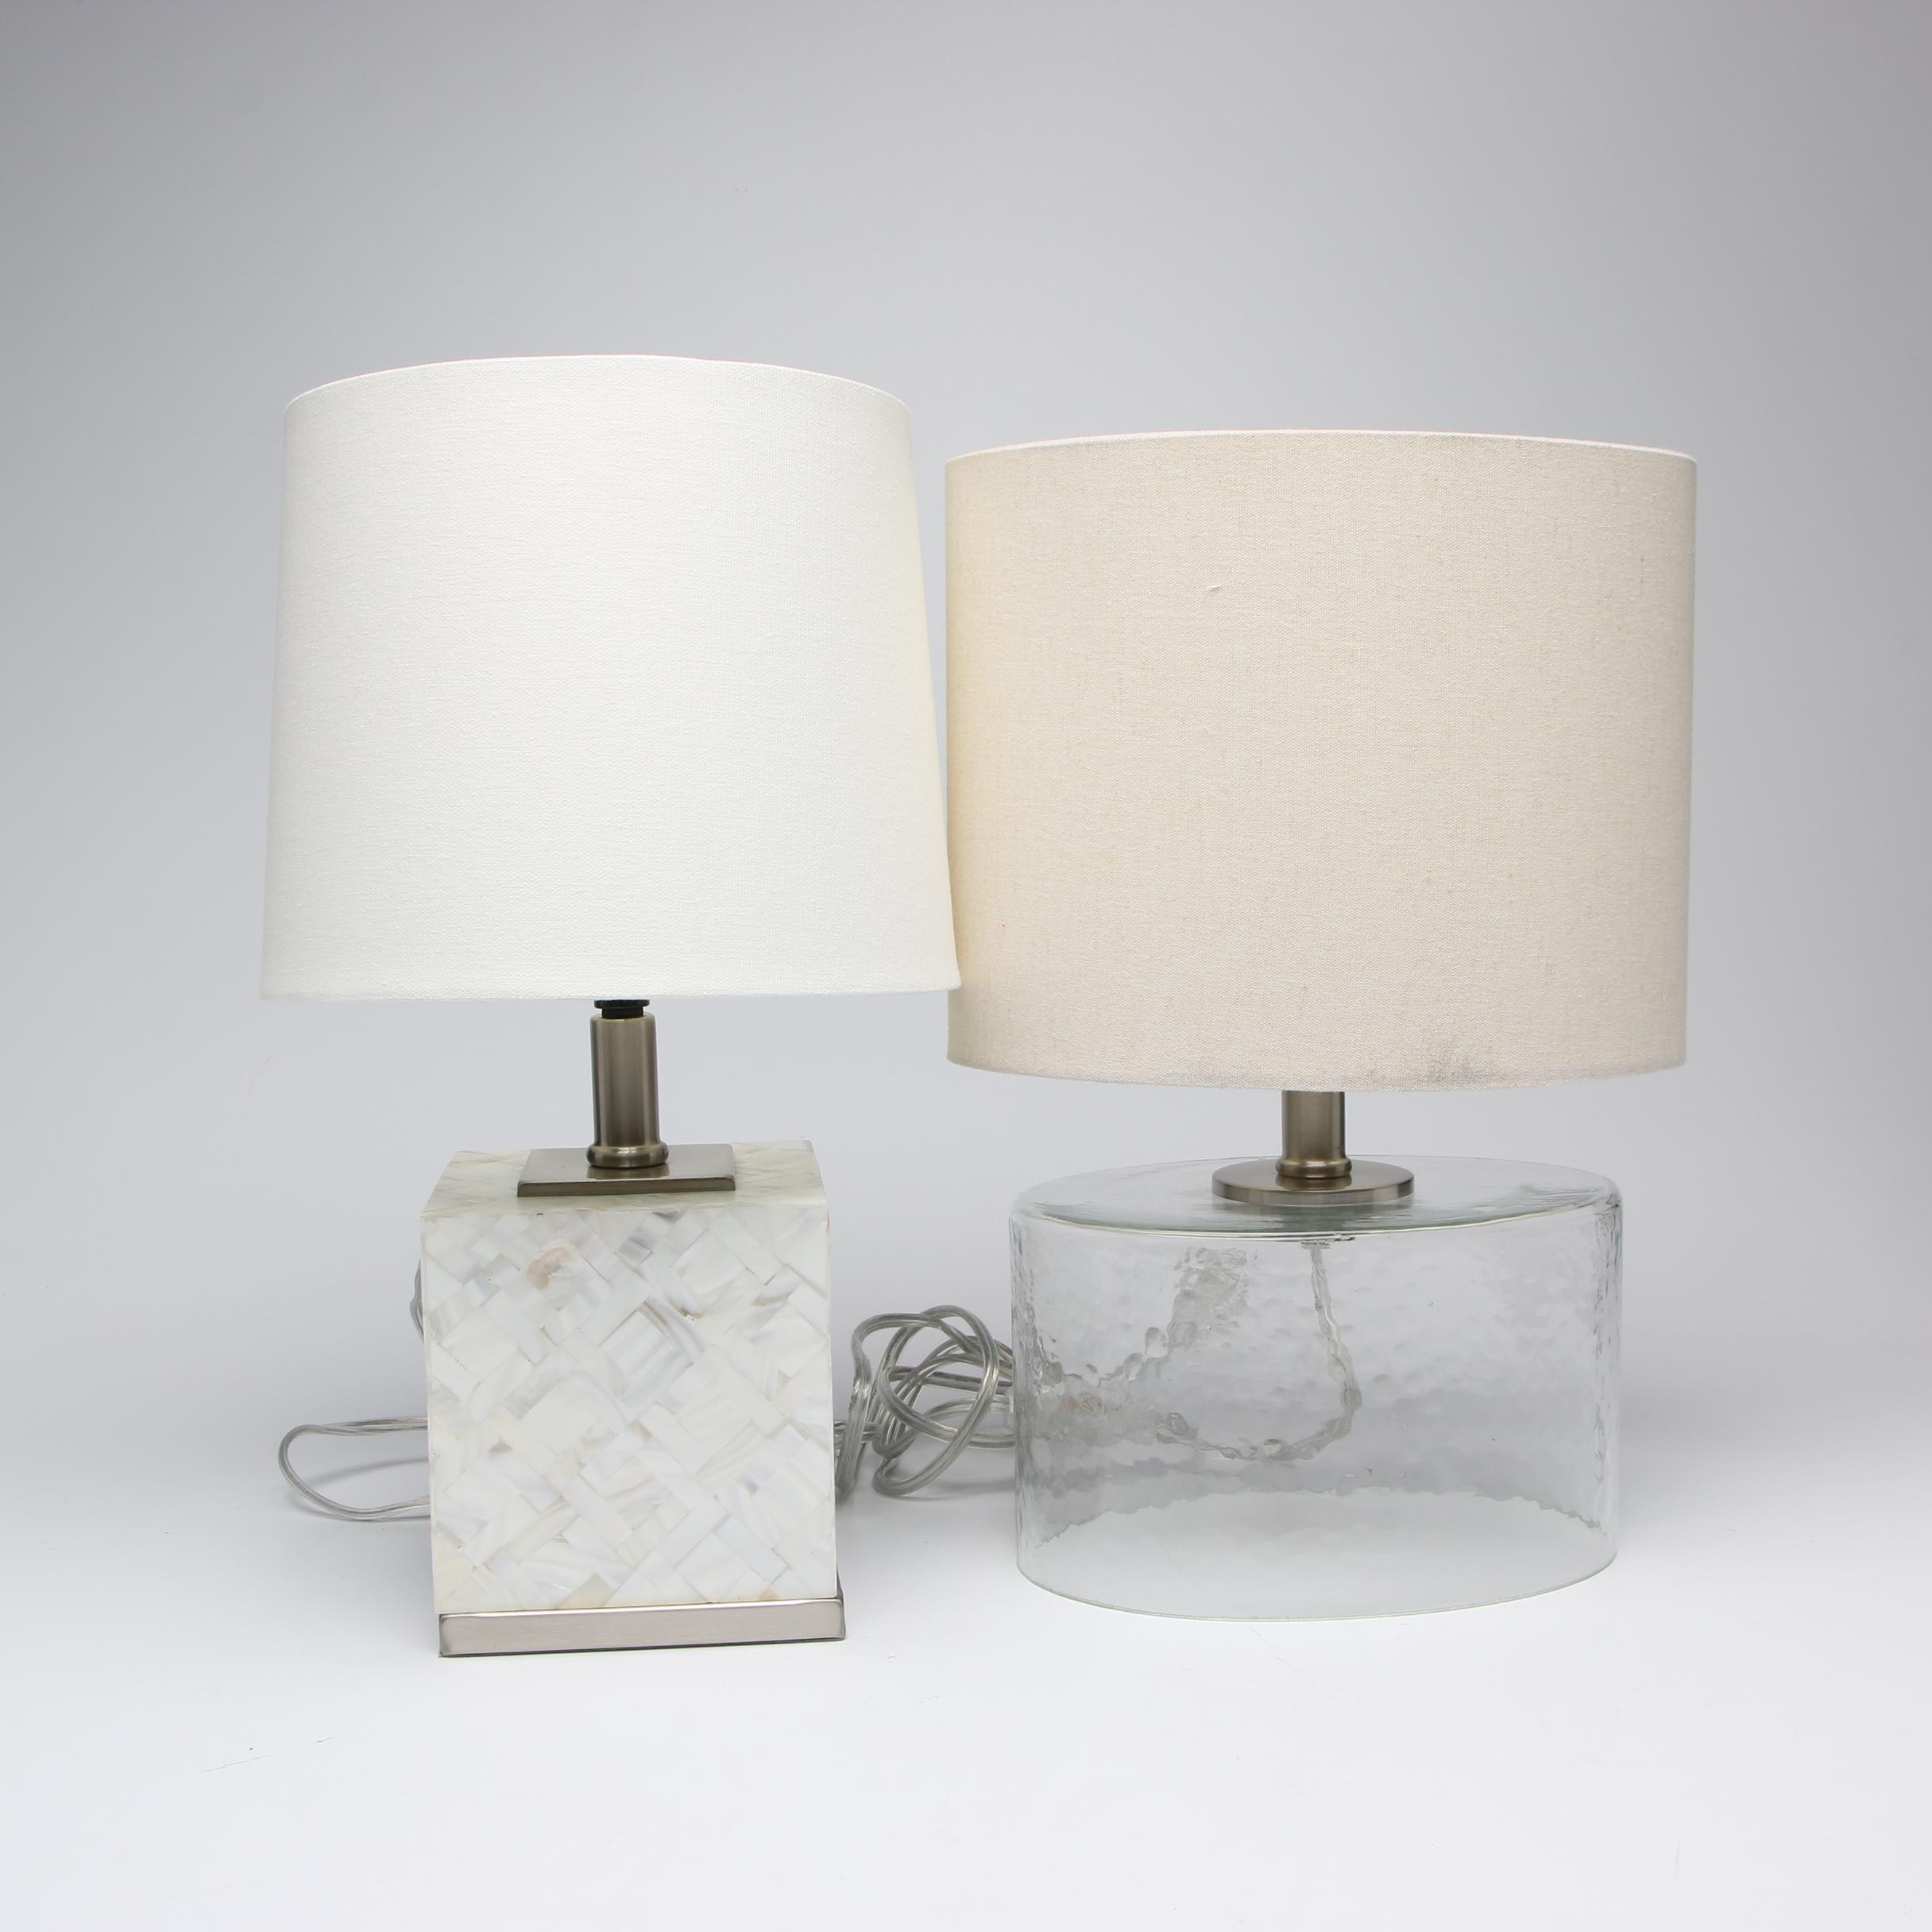 Pair of Table Lamps, Contemporary